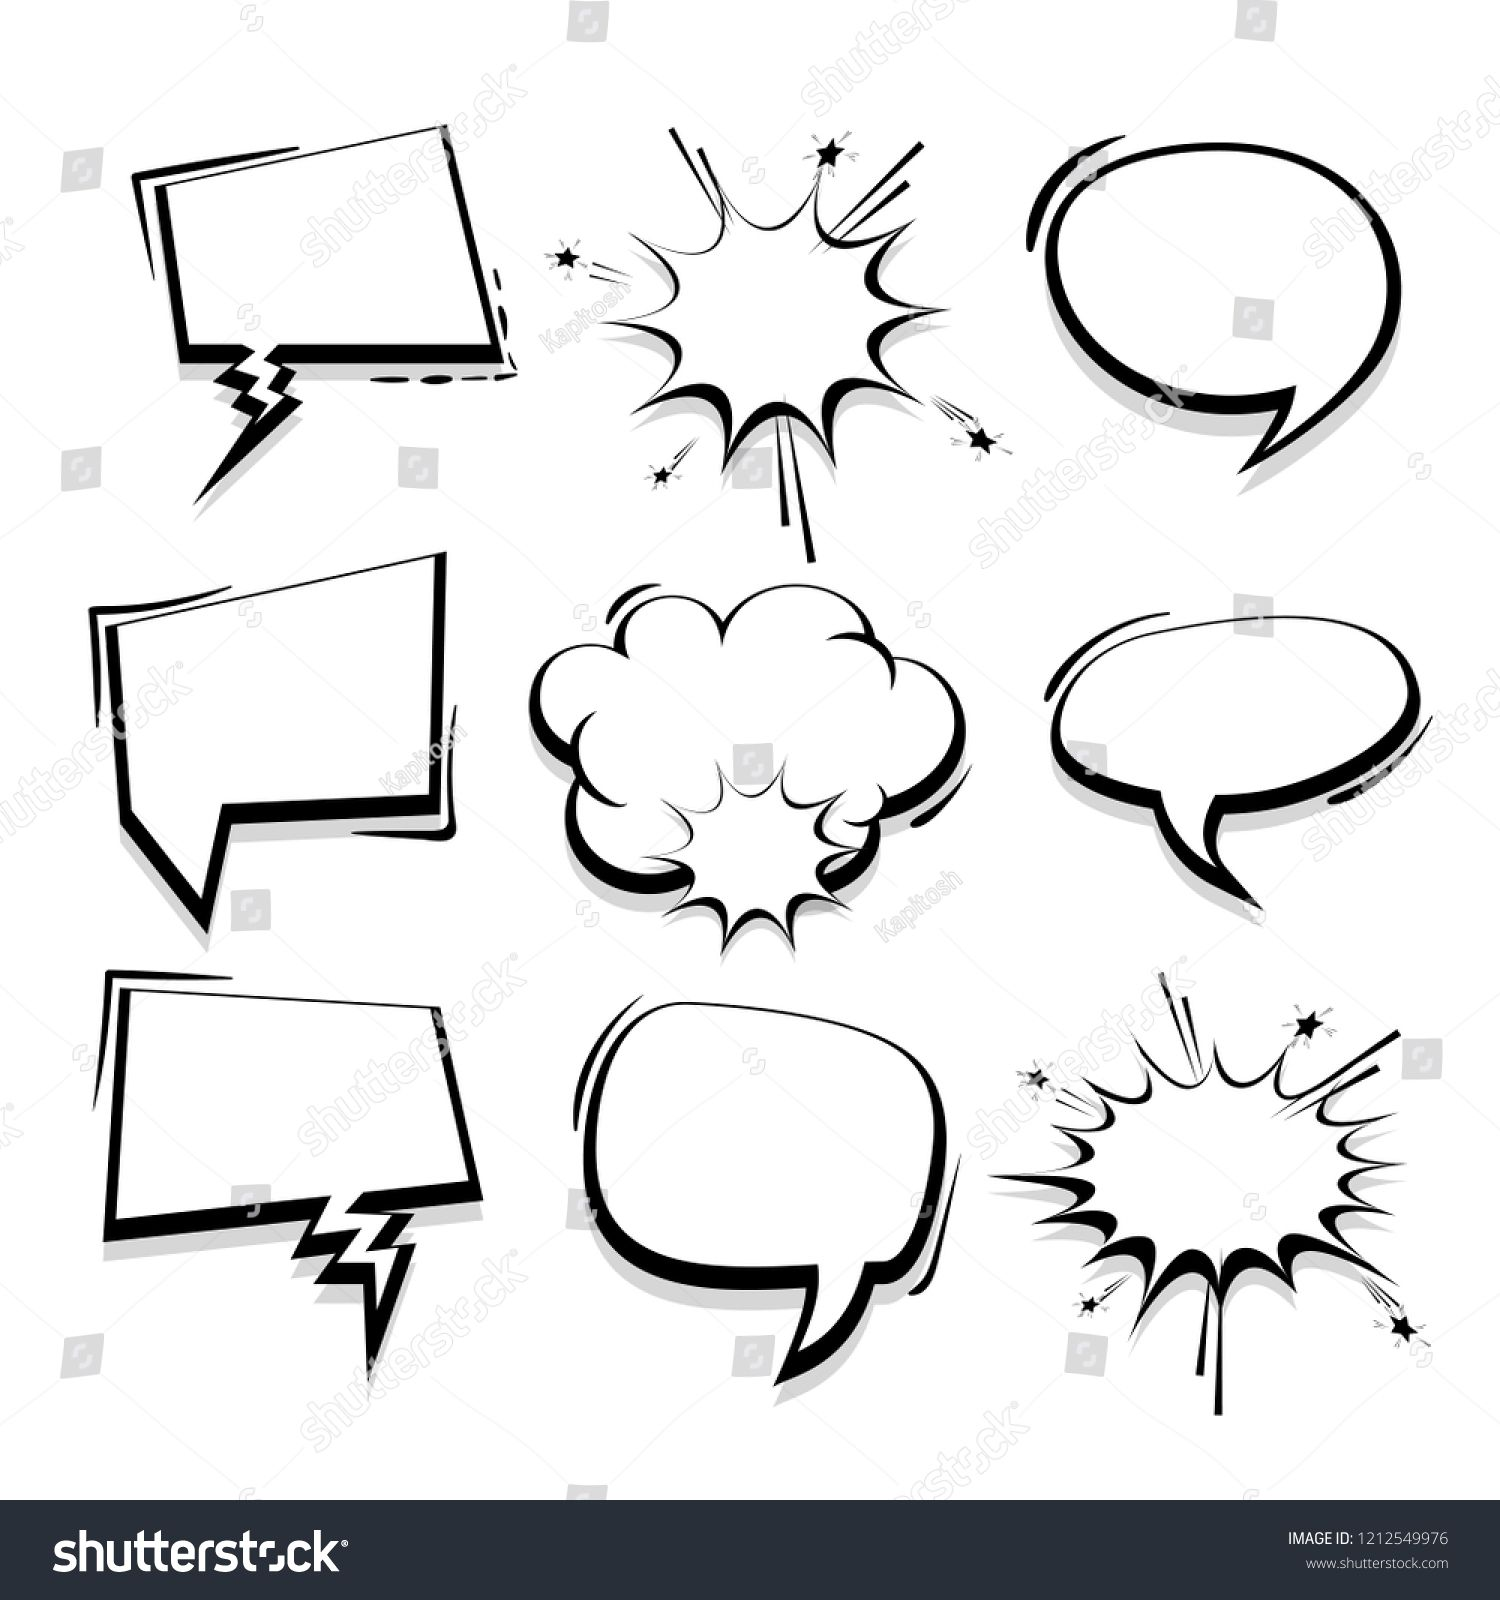 Big Set Hand Drawn Monochrome Blank Effects Template Comic Speech Bubbles Halftone Dot Vector Background In Pop Bubble Drawing Halftone Dots How To Draw Hands I'm running photoshop cs6, so i dont know if it will work on older versions. big set hand drawn monochrome blank